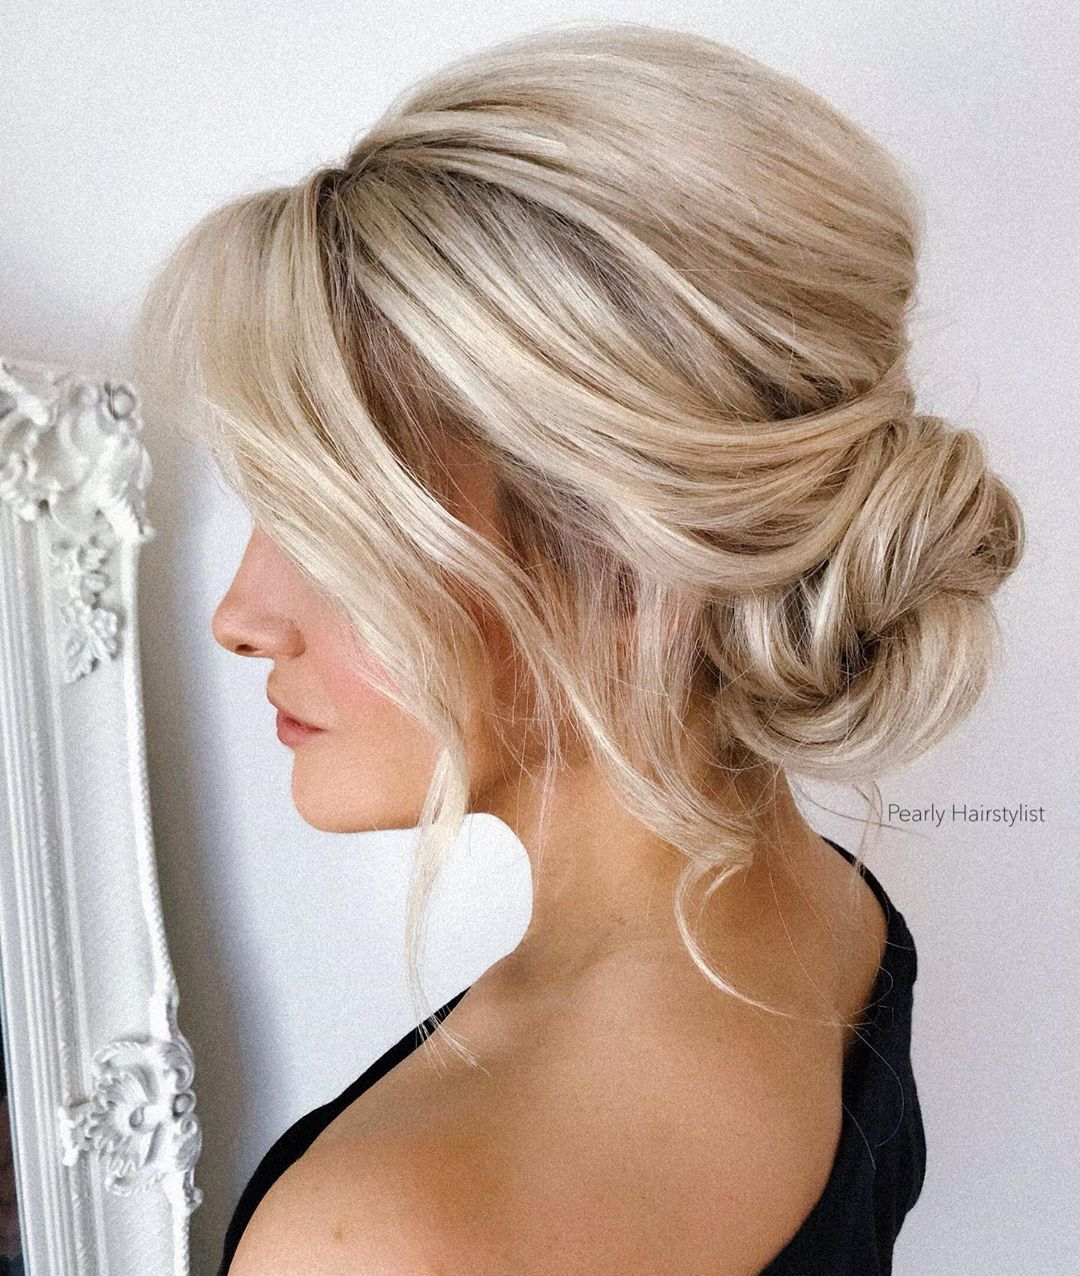 How S Your Wedding Plans Coming Along Have You Chosen A Hairstyle To Go W In 2020 Mother Of The Bride Hair Mother Of The Groom Hairstyles Updos For Medium Length Hair